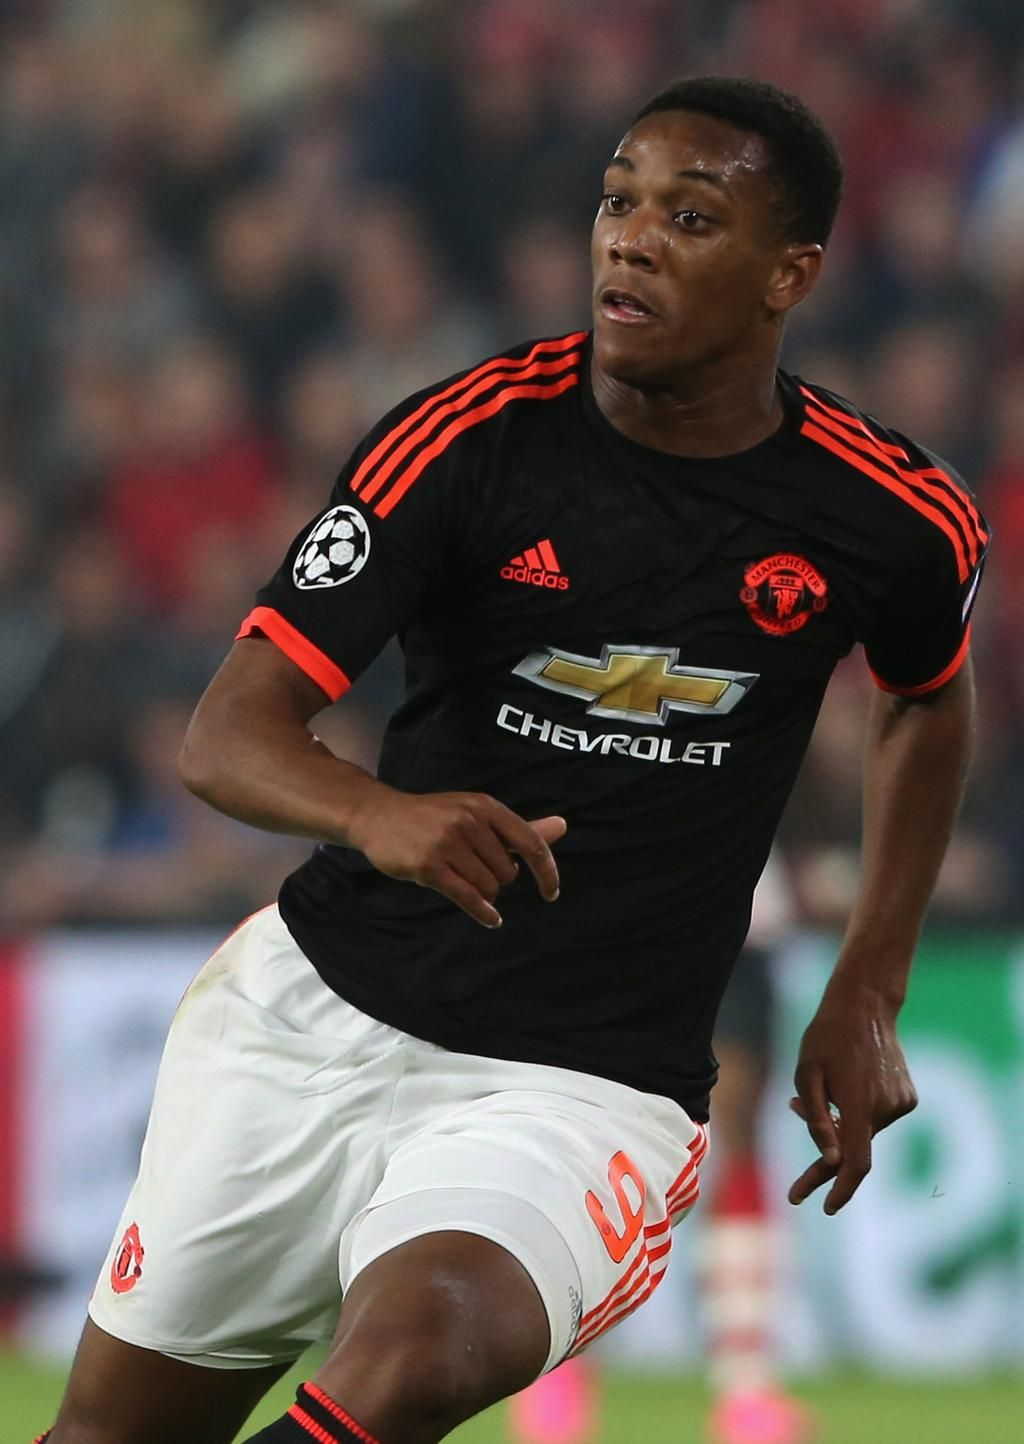 Will anthony martial return for manchester united against hull city manchester evening news - Anthony Martial Striker France Manchester United This Kid Is Going To Lead